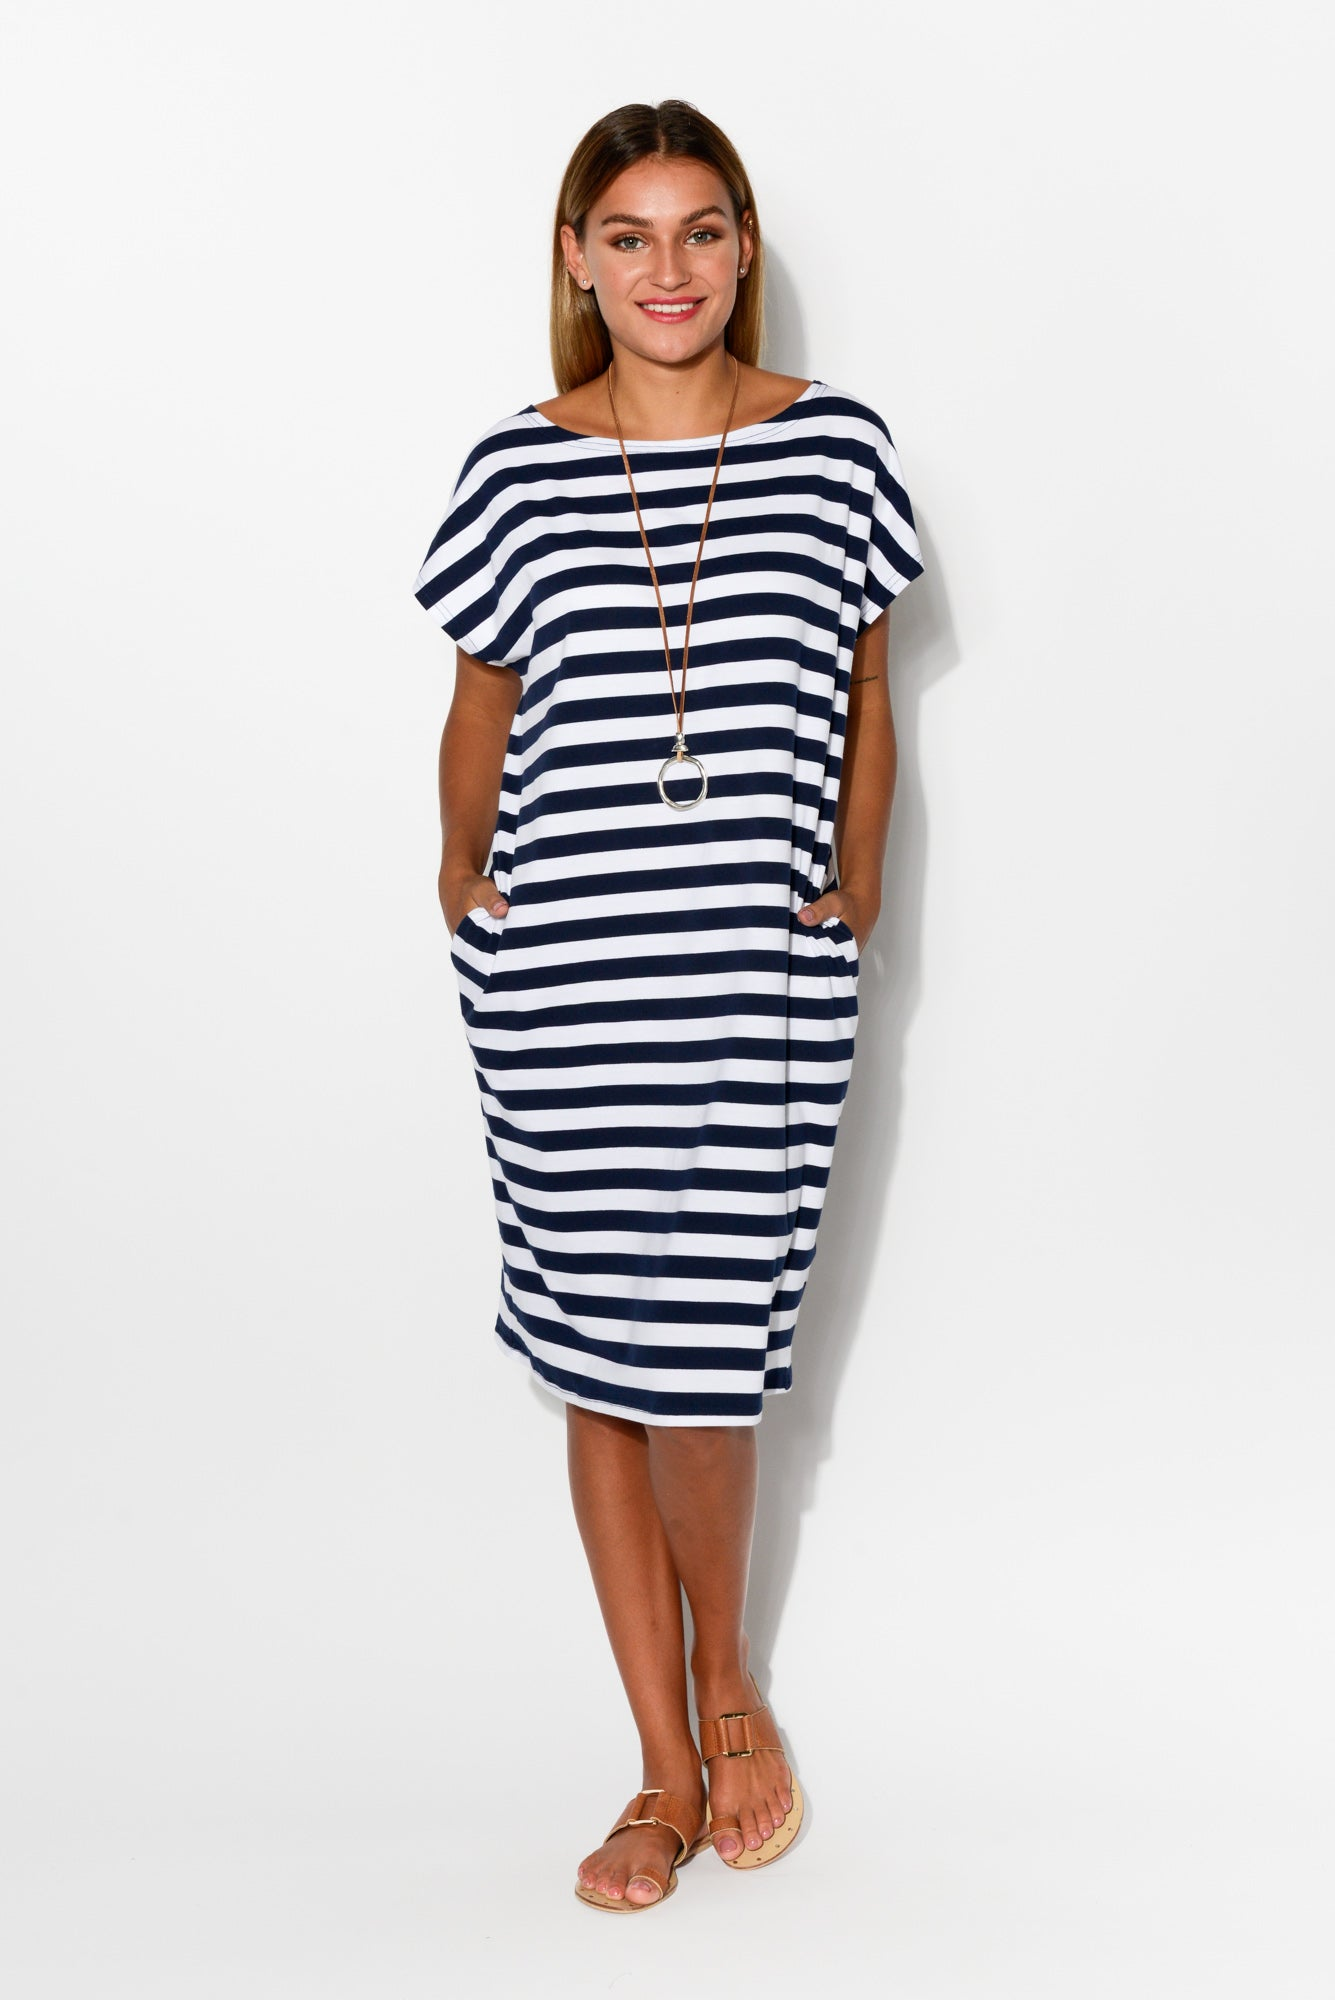 Navy Stripe Cotton Tee Dress - Blue Bungalow